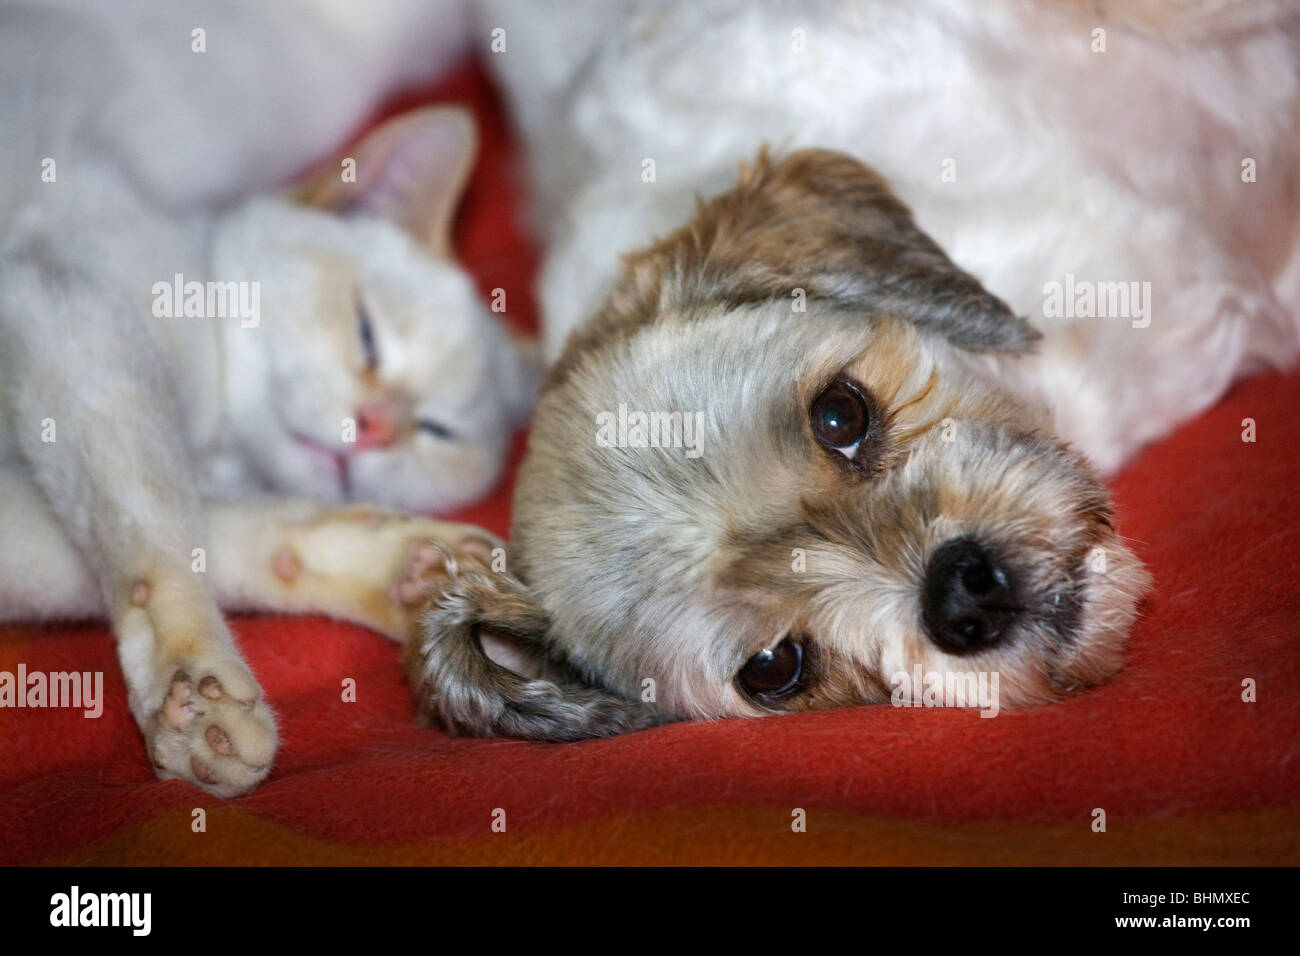 House cat and mongrel dog (Canis lupus familiaris) sleeping together - Stock Image